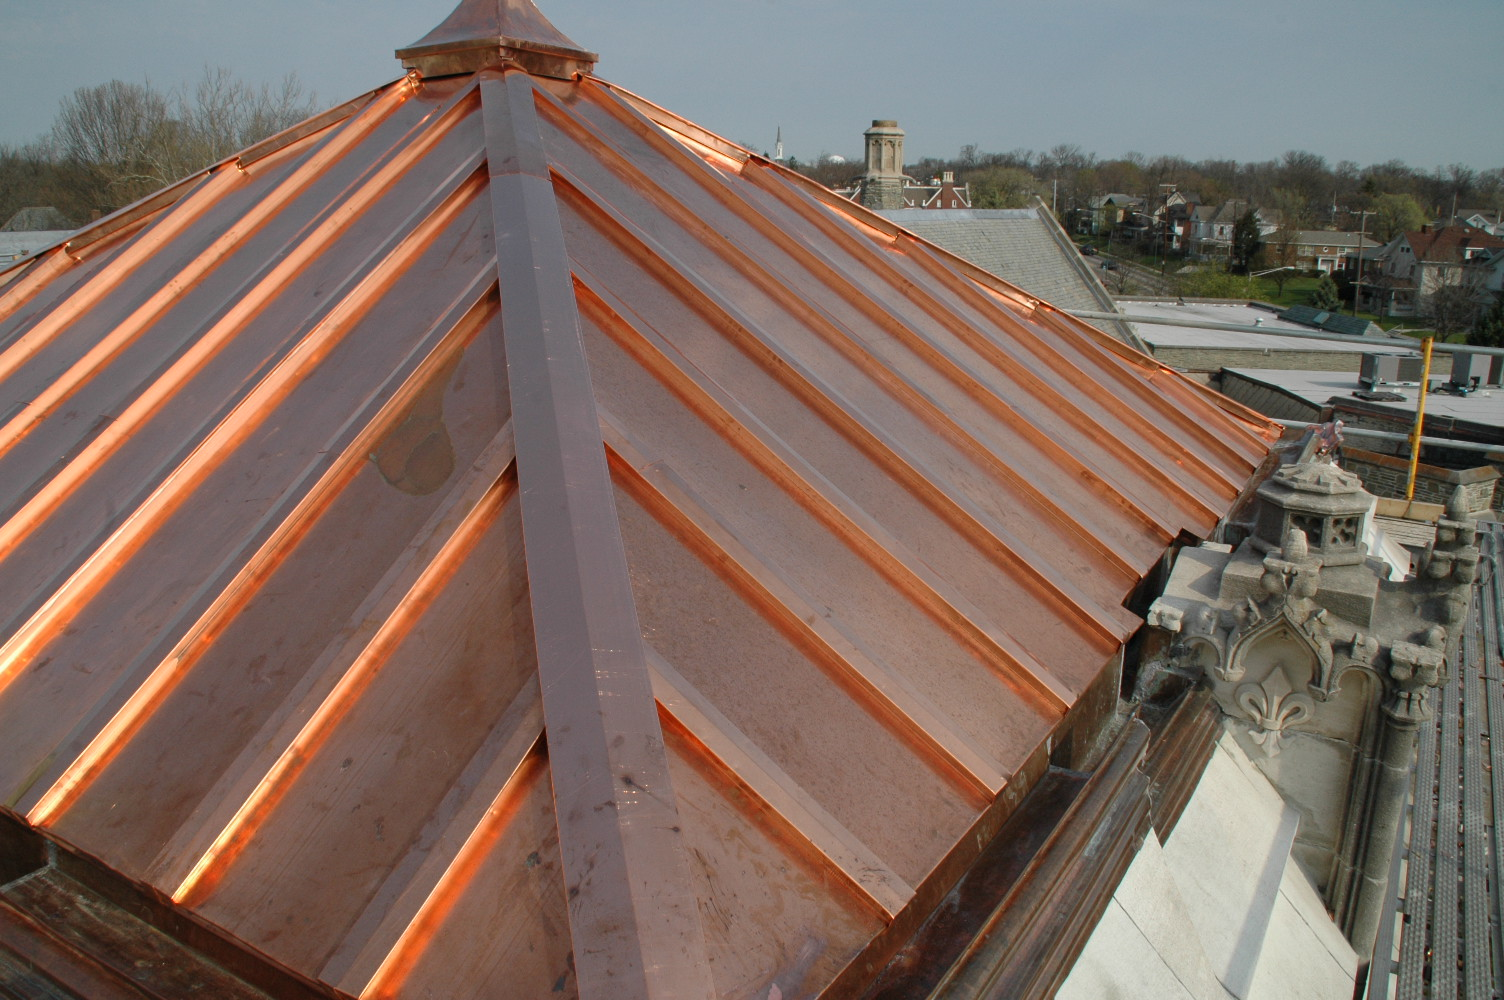 Virginia roofing siding company copper roofing for Northern virginia roofing and exteriors